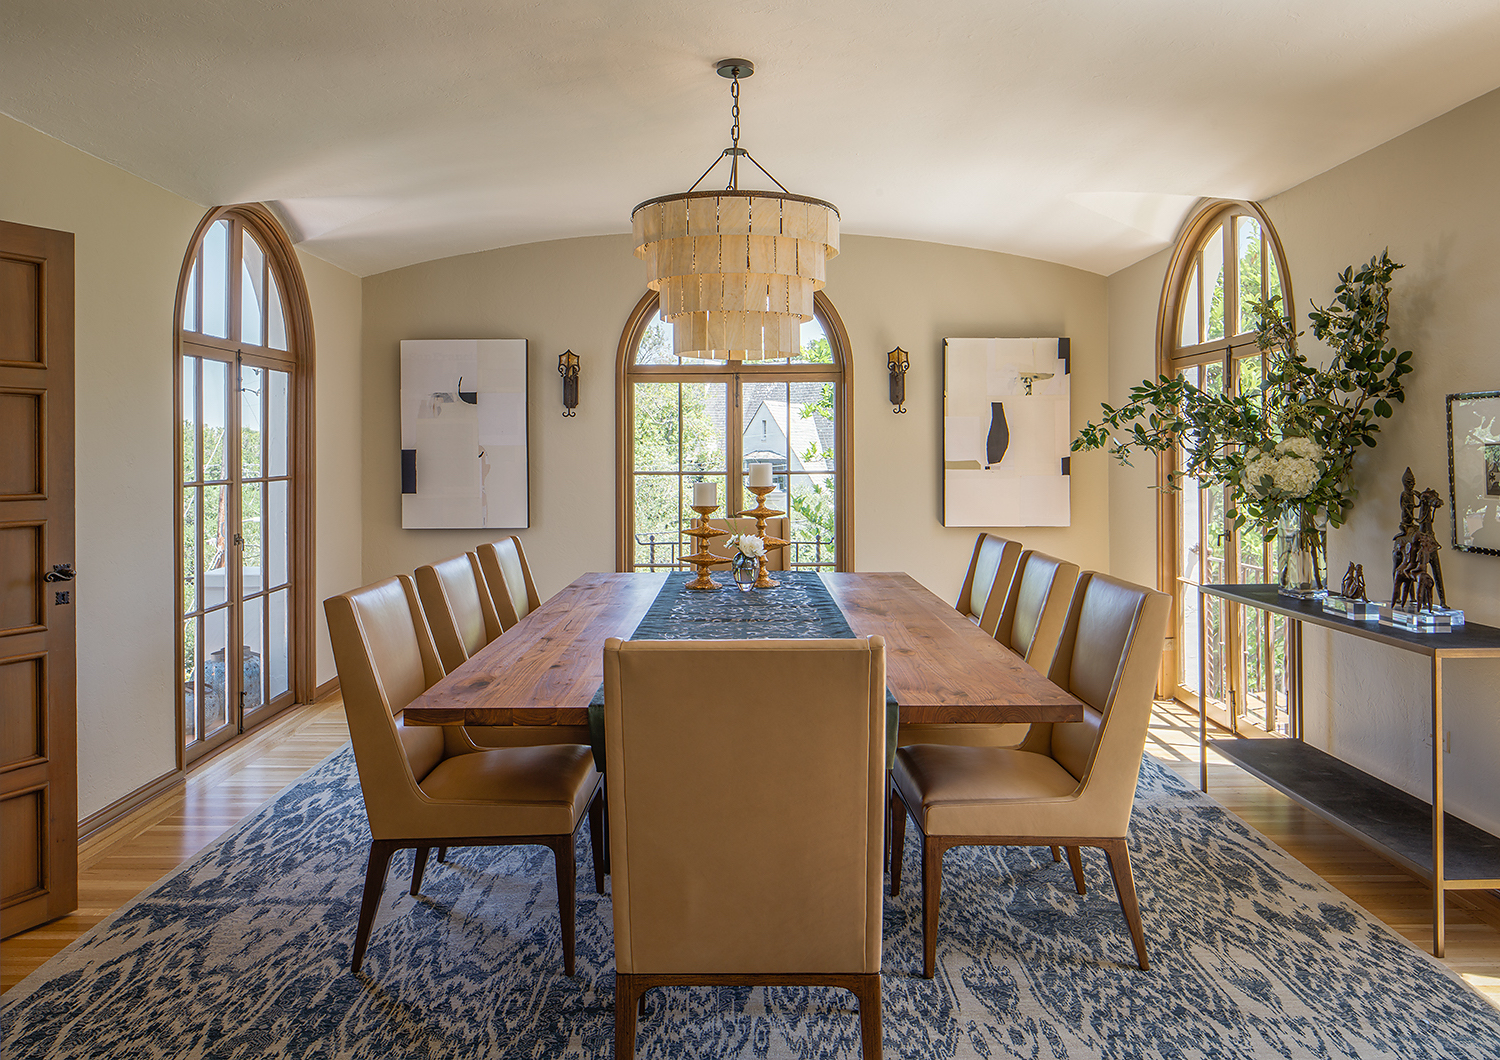 expert tips to choose the dining room chairs and table #17057